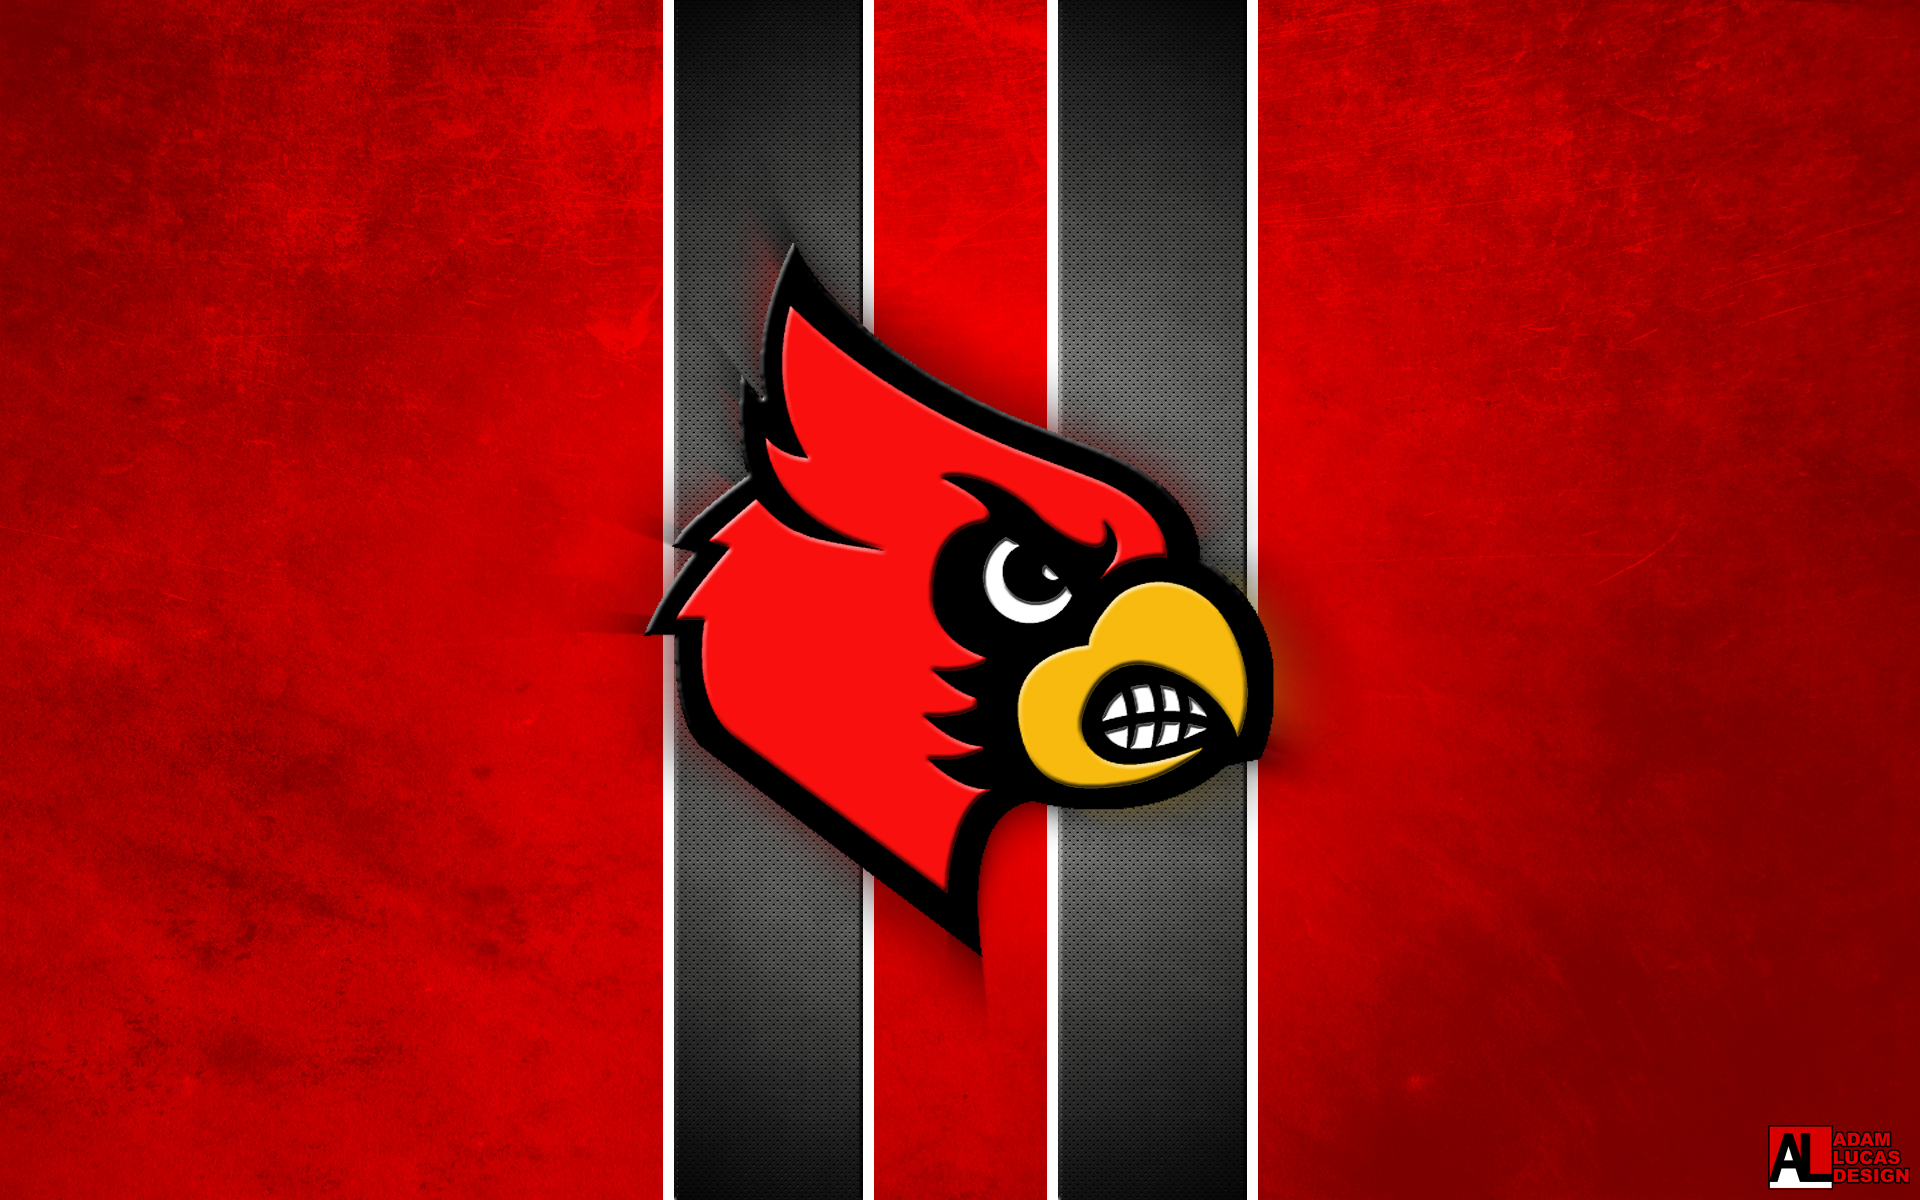 Nothing found for Picpxpo Louisville Cardinal Desktop Wallpaper 1920x1200